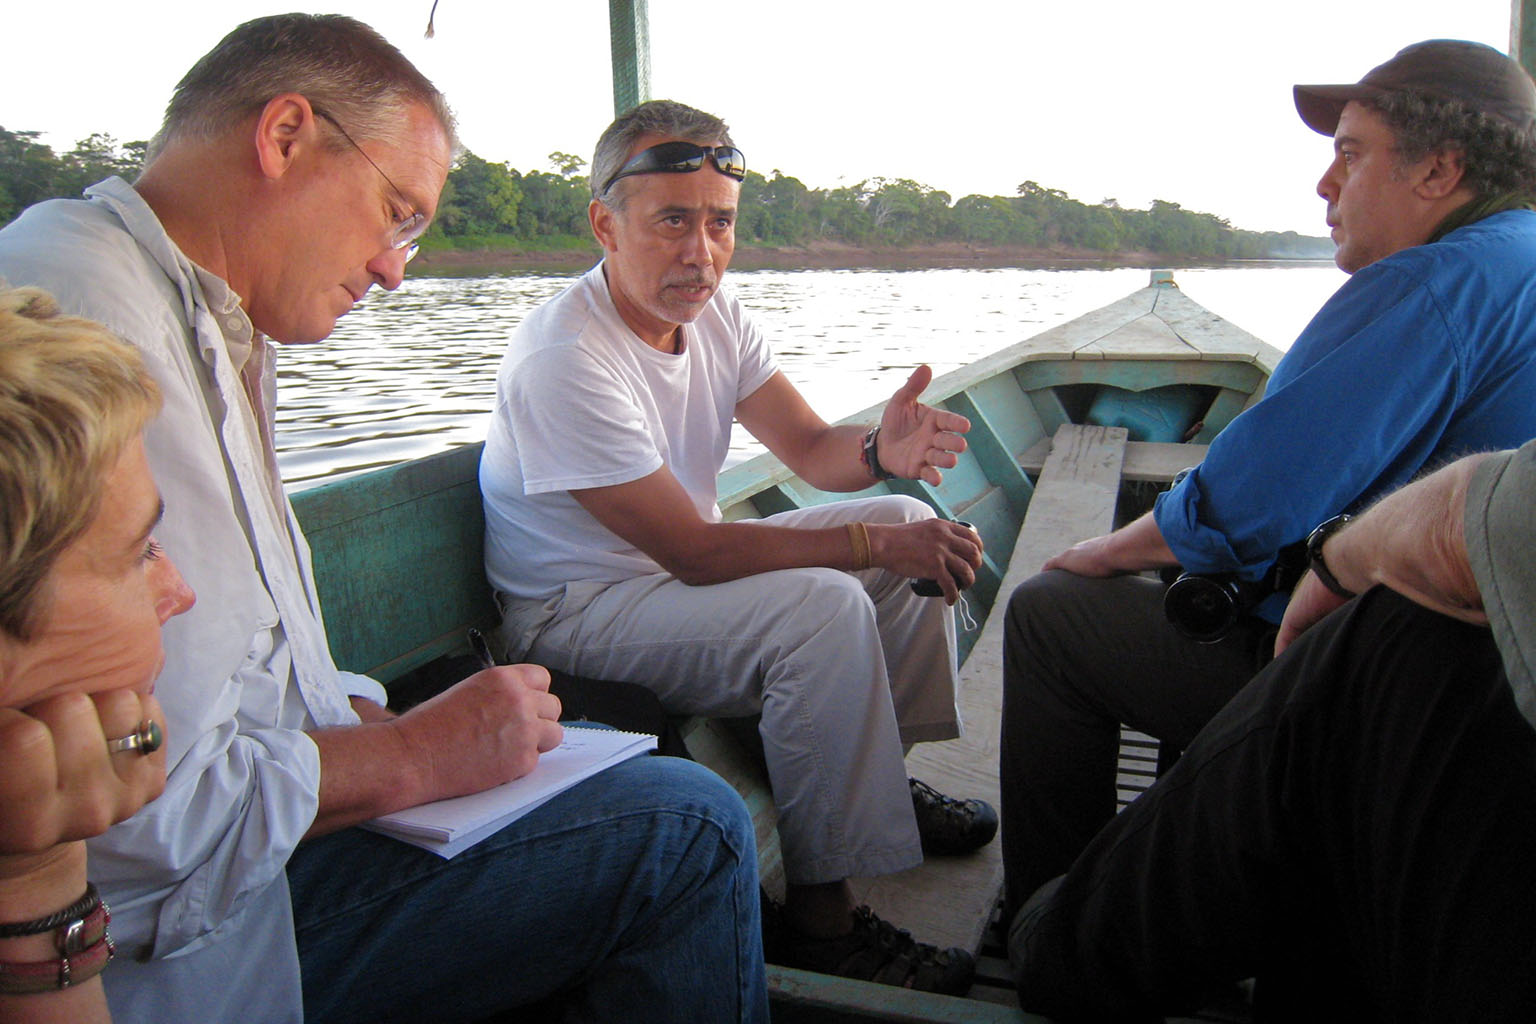 Enrique Ortiz in the Amazon. Photo credit: The Battery